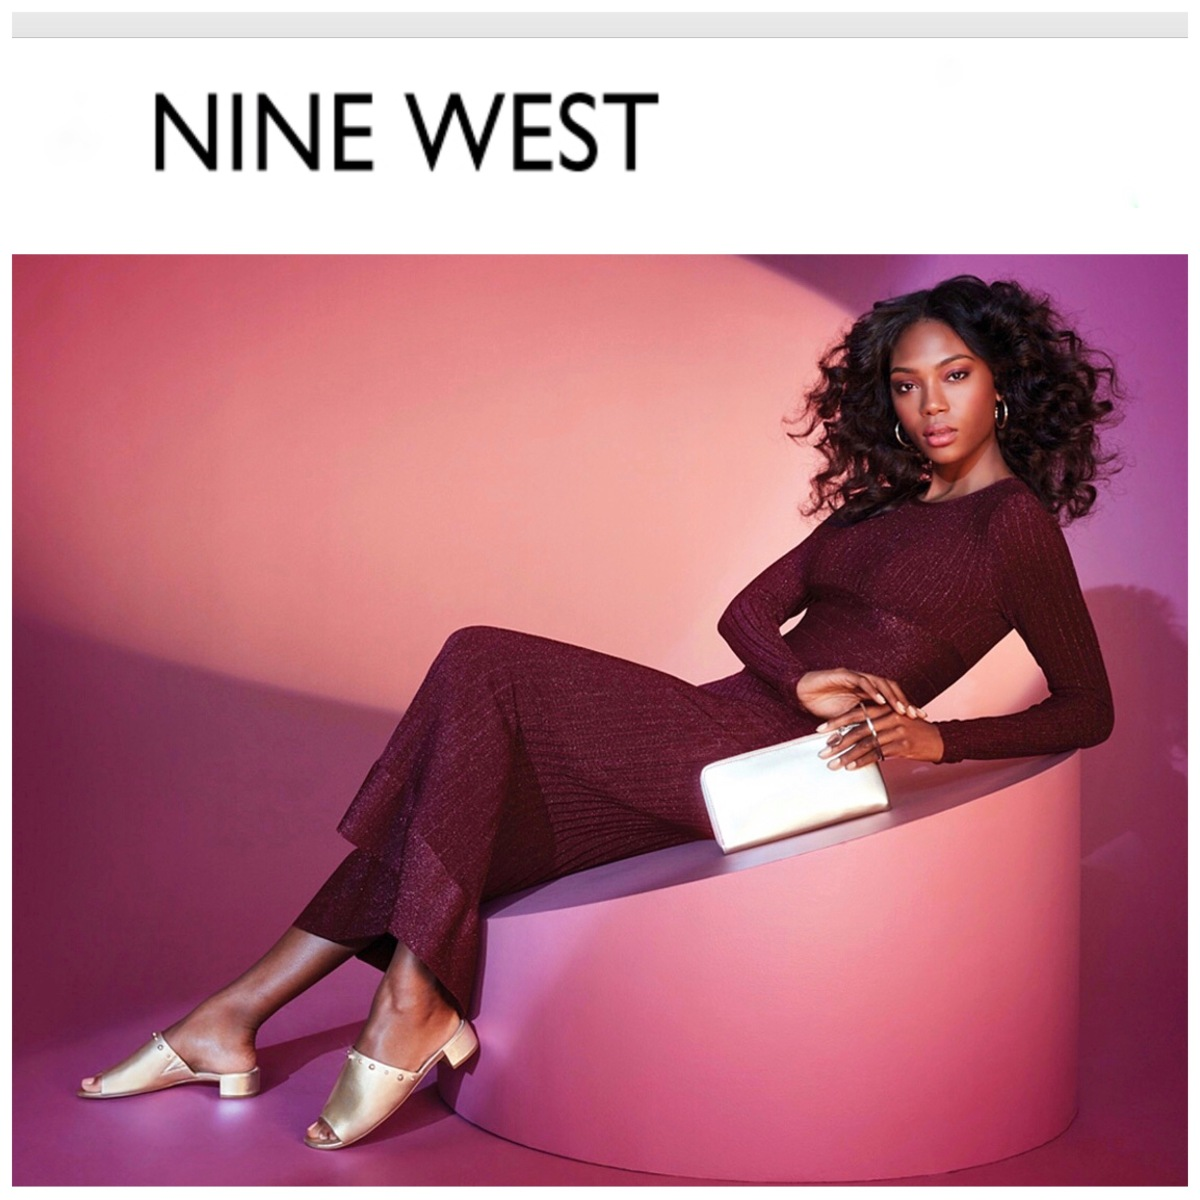 Only The Best: Nine West Campaign